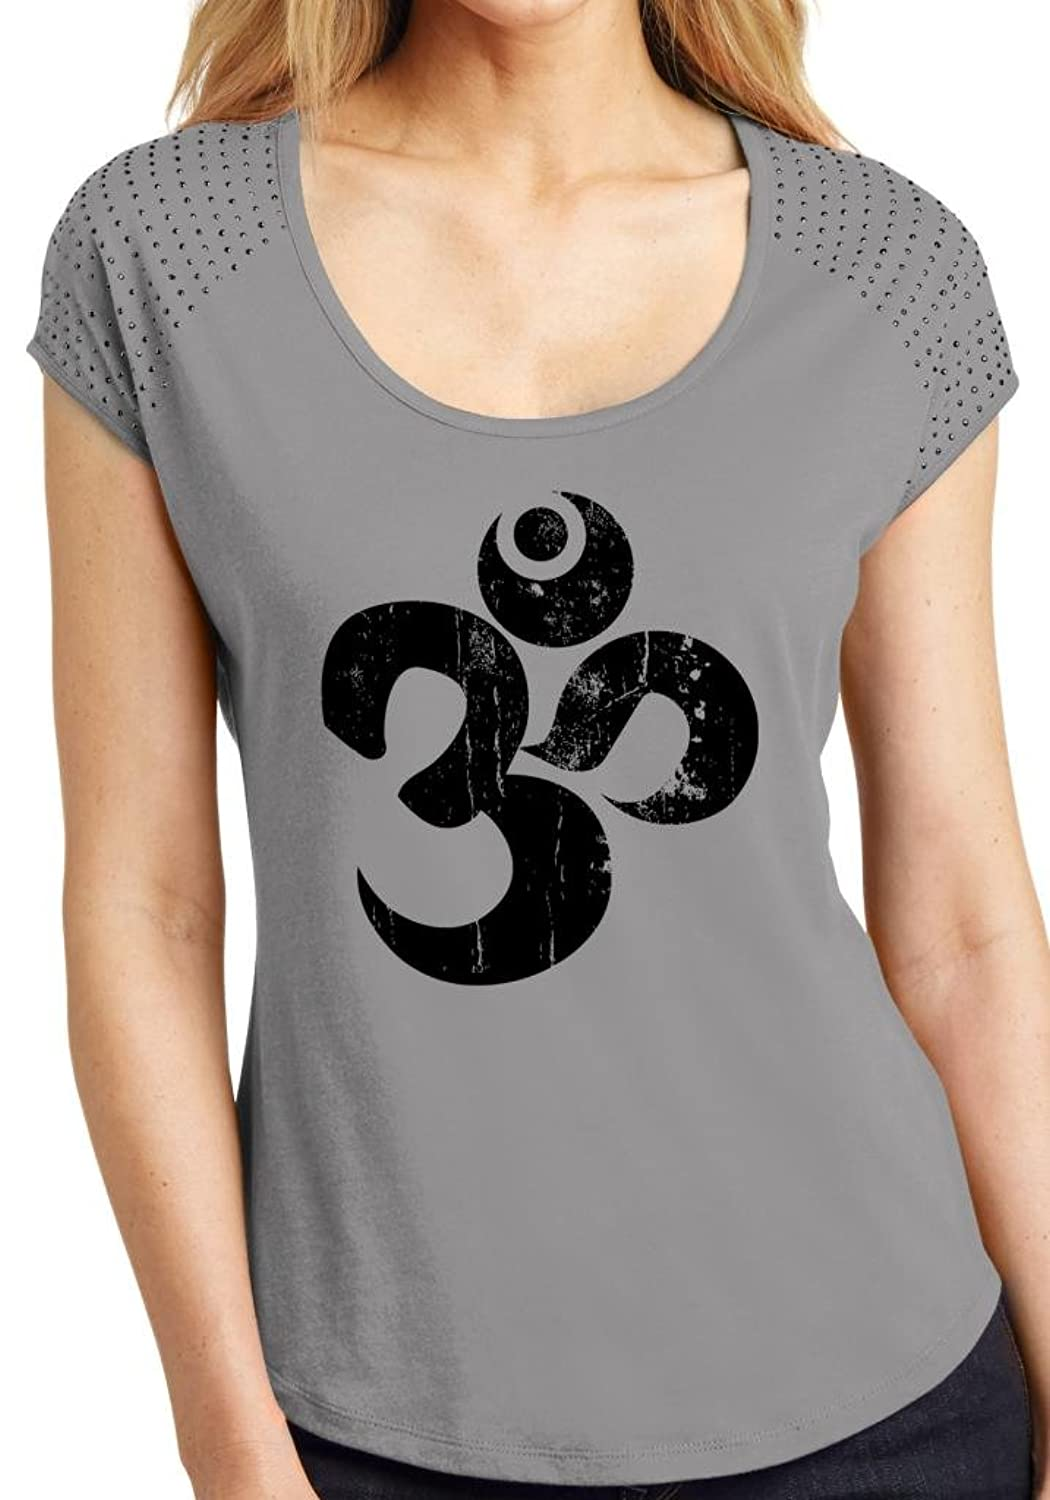 Yoga Clothing For You Ladies Distressed OM Bling Top